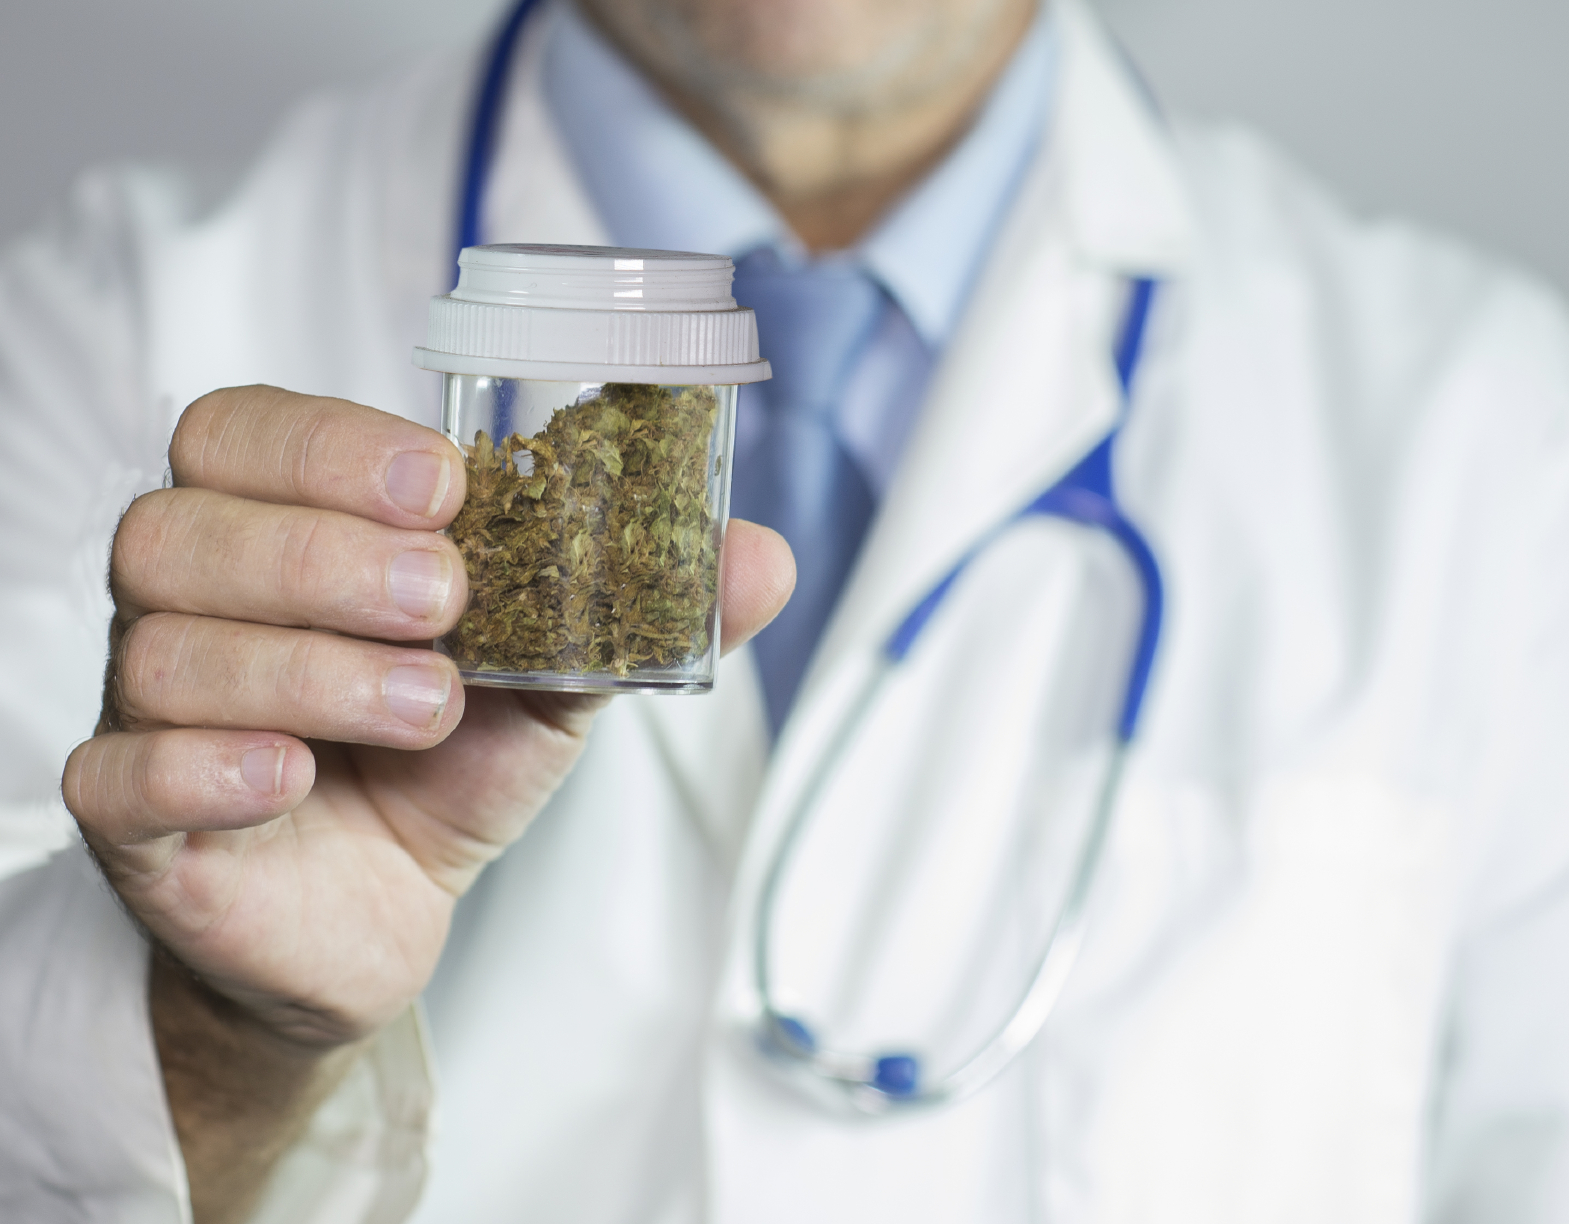 You may already know some of the health benefits of medicinal marijuana use. But there are some you may never hear about. Here are five of the most surprising.